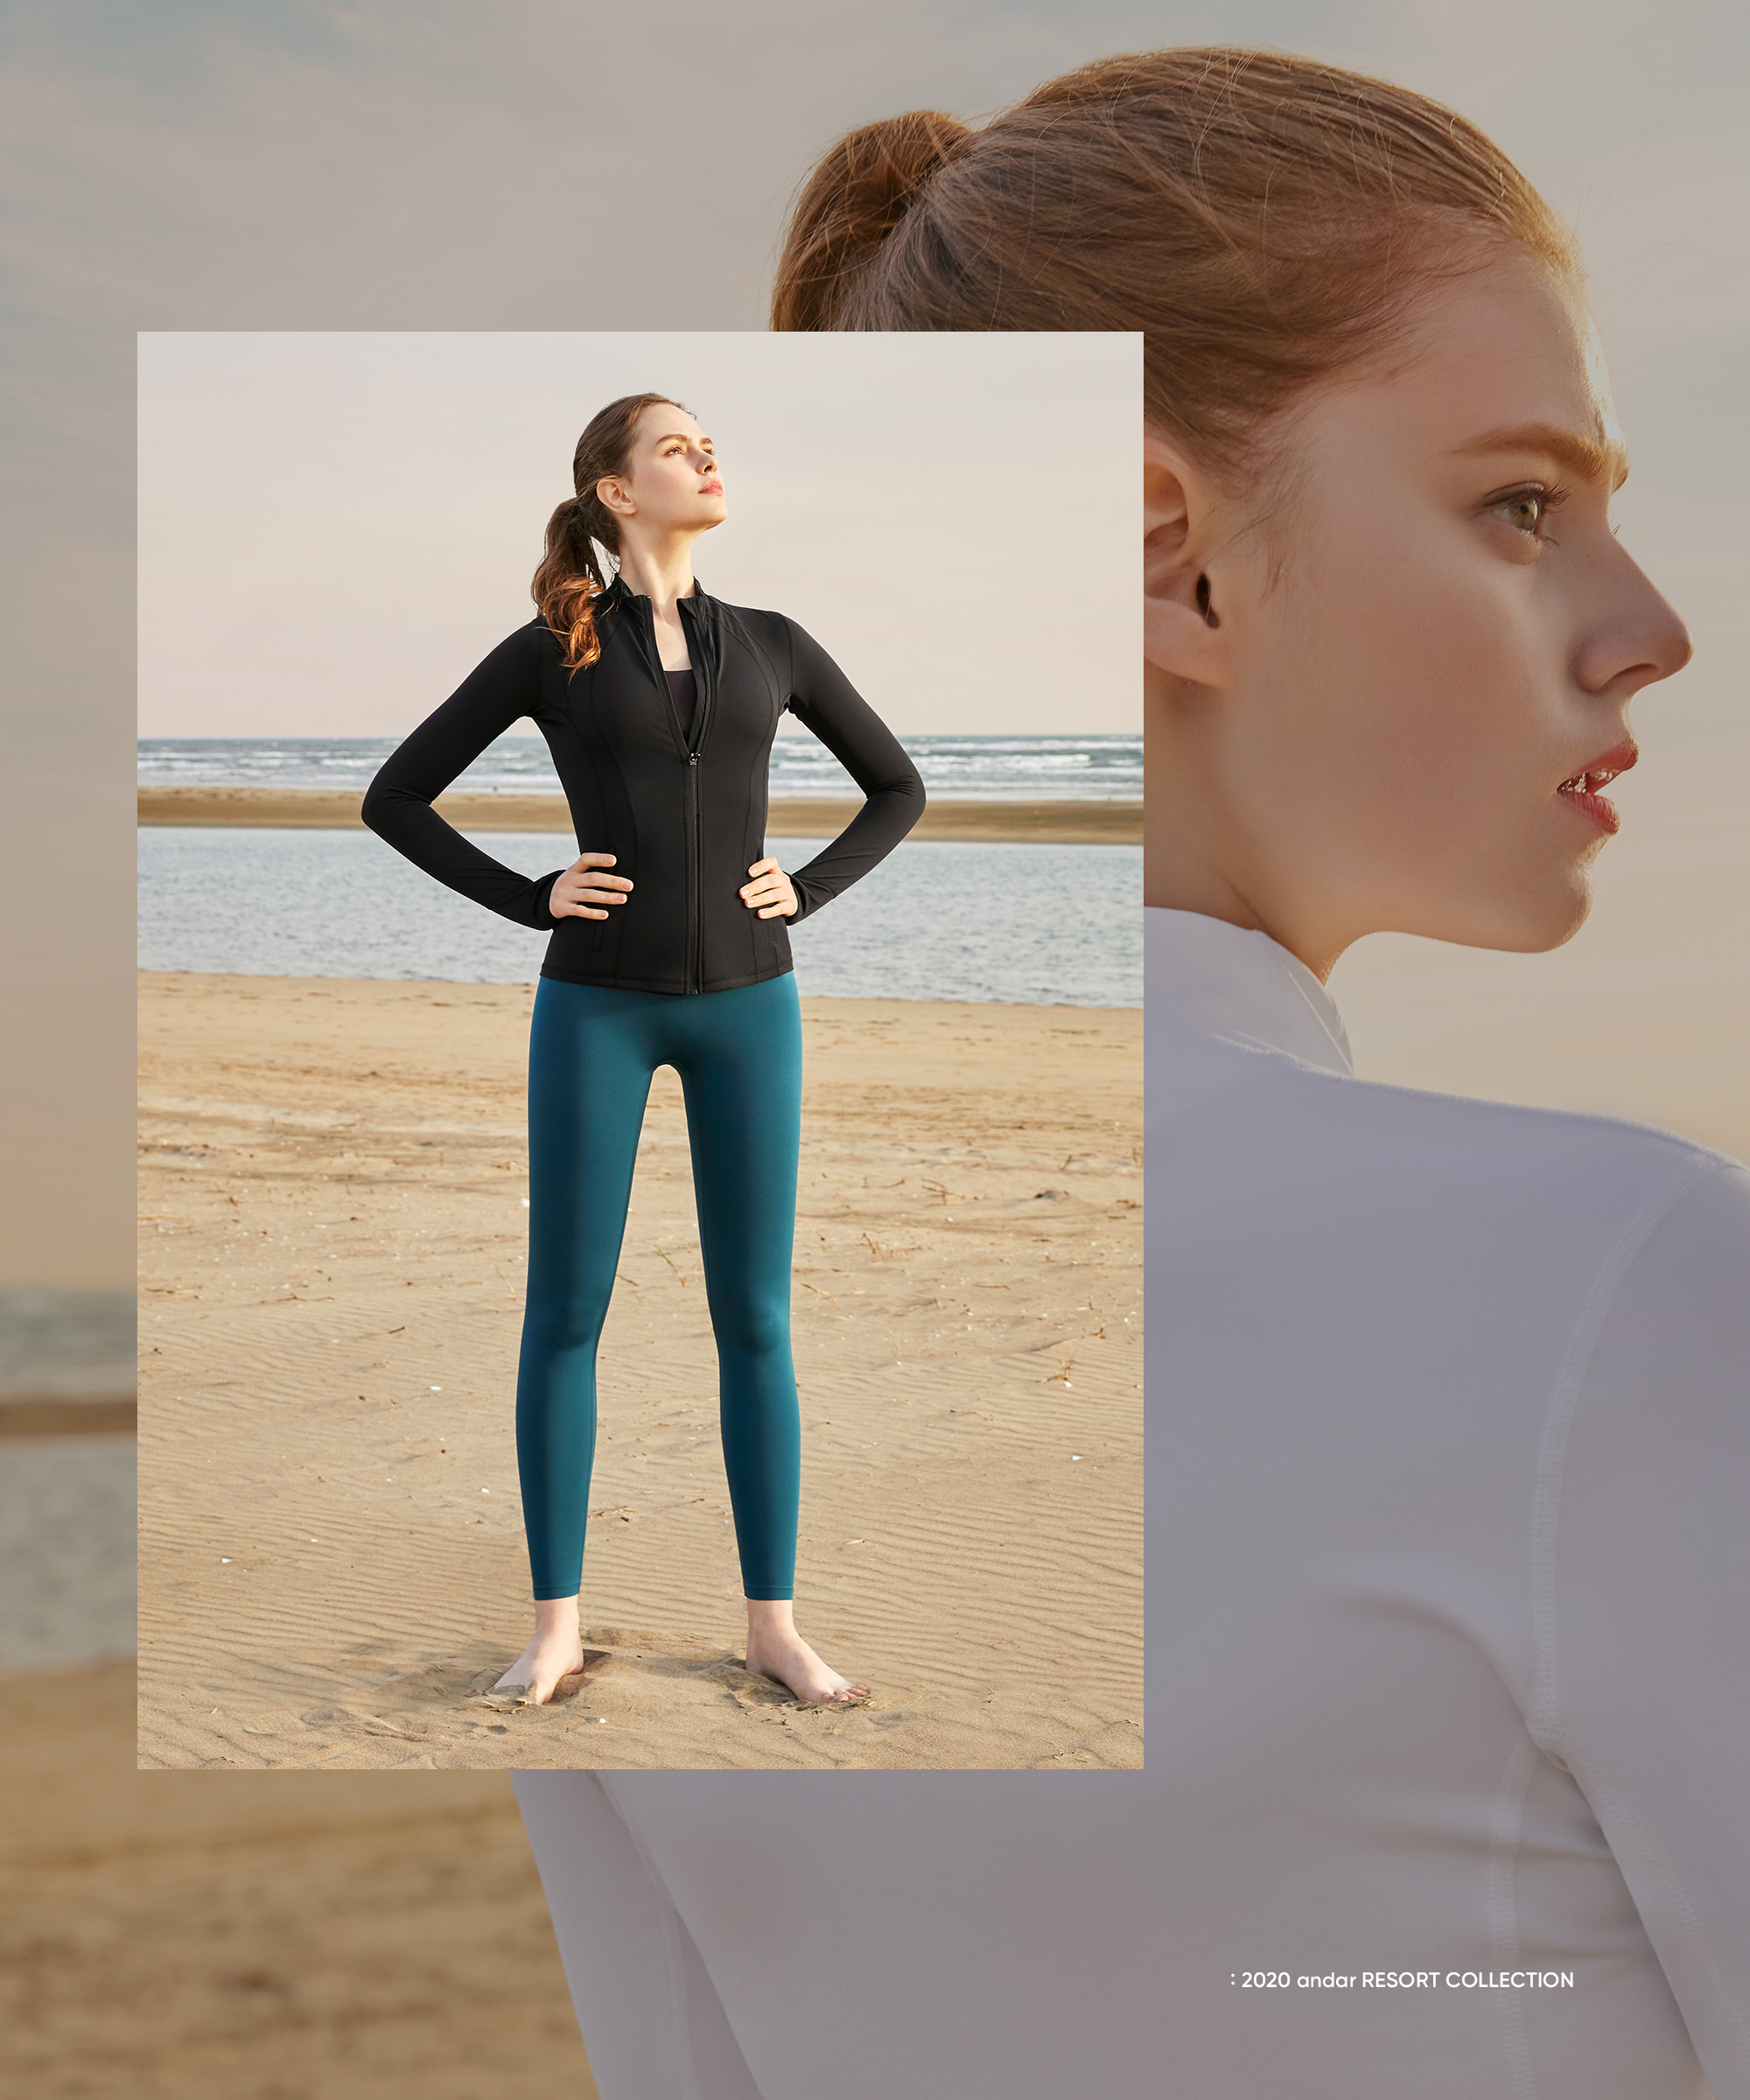 2020 andar RESORT COLLECTION